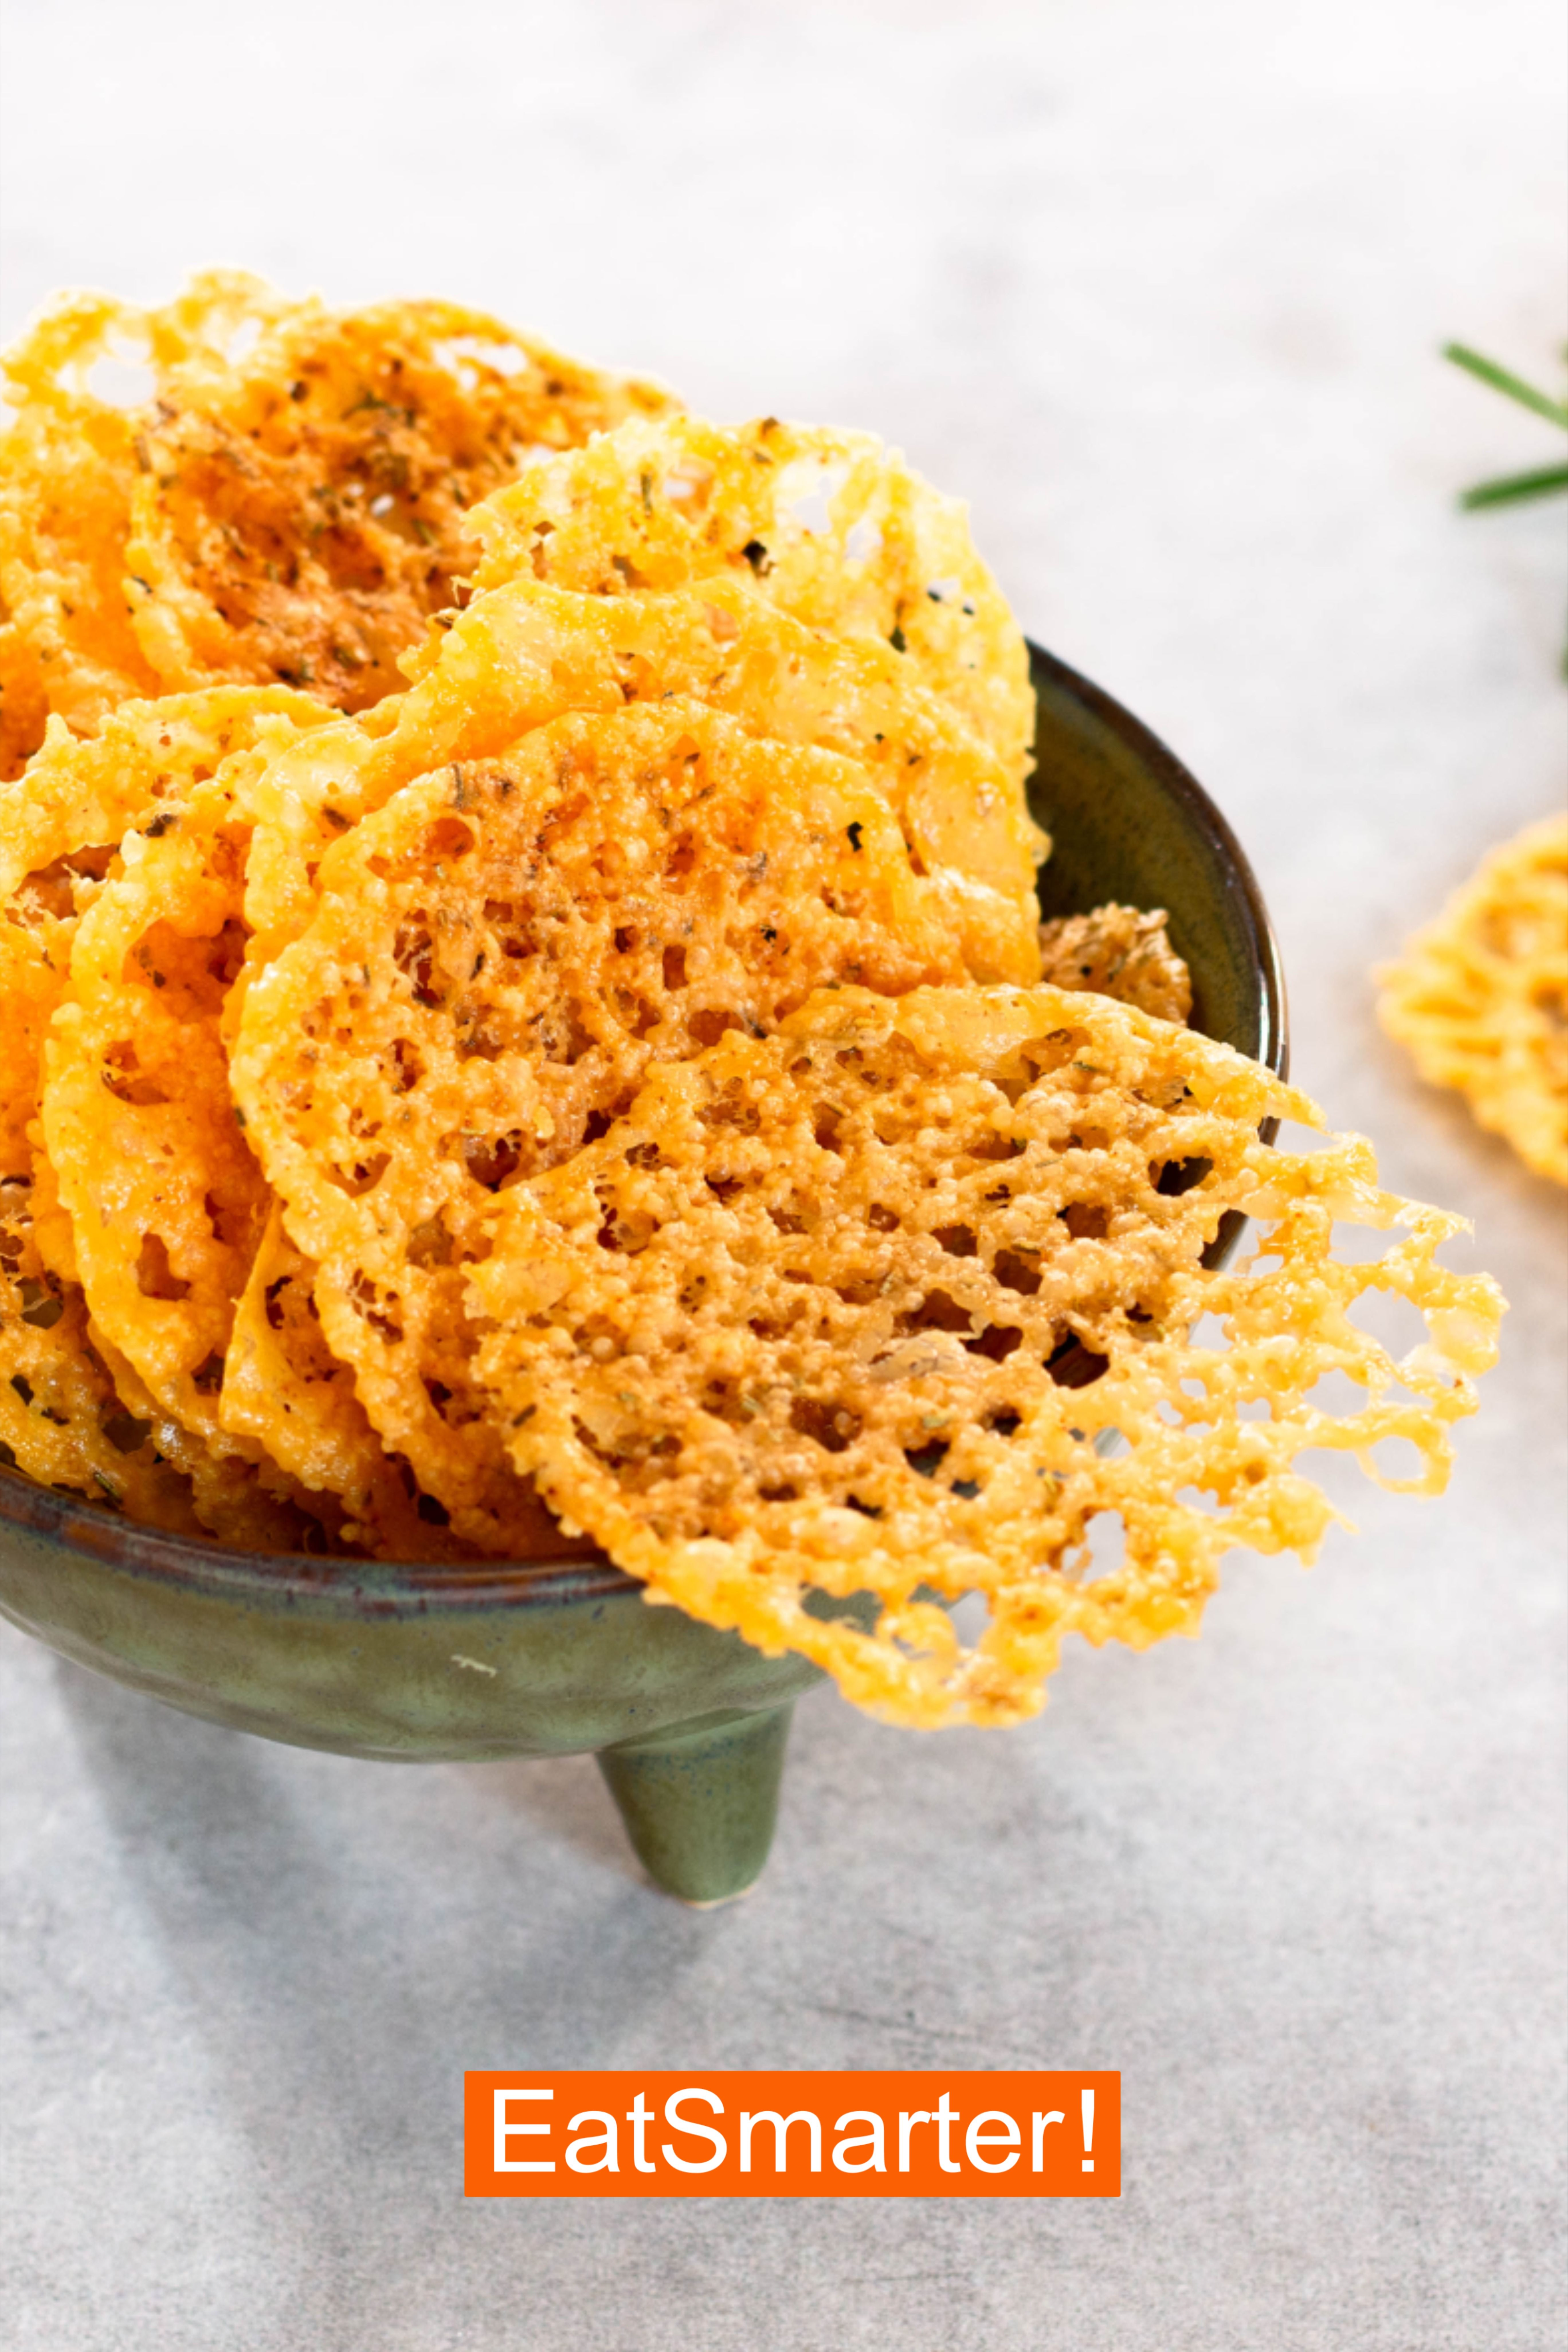 Photo of Low carb parmesan chips with herbs and peppers